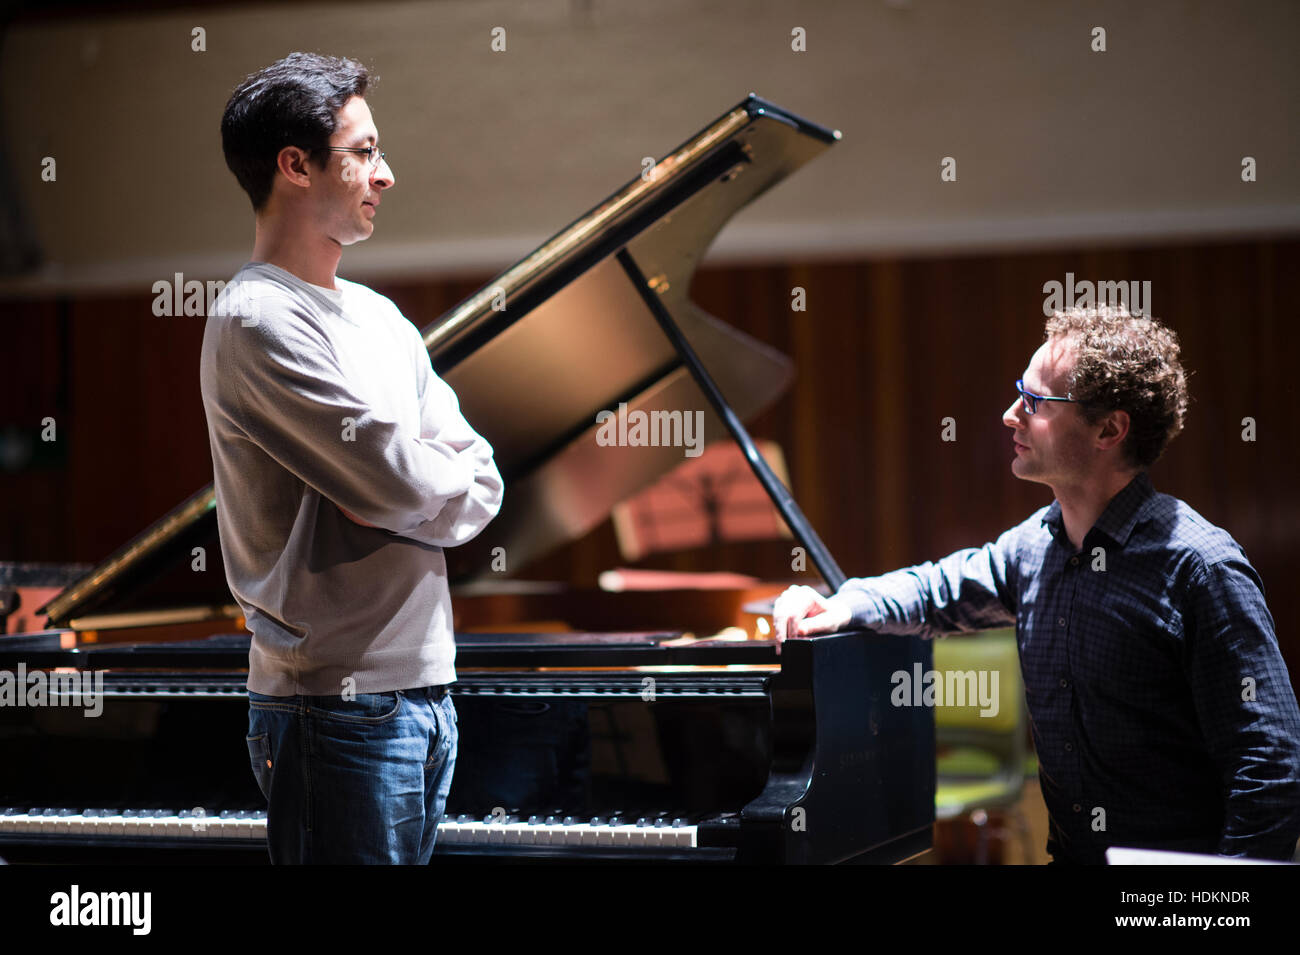 Toby Purser (conductor) and Tom Poster (piano - standing) at MusicFest Aberystwyth, Wales UK July 2016 - Stock Image